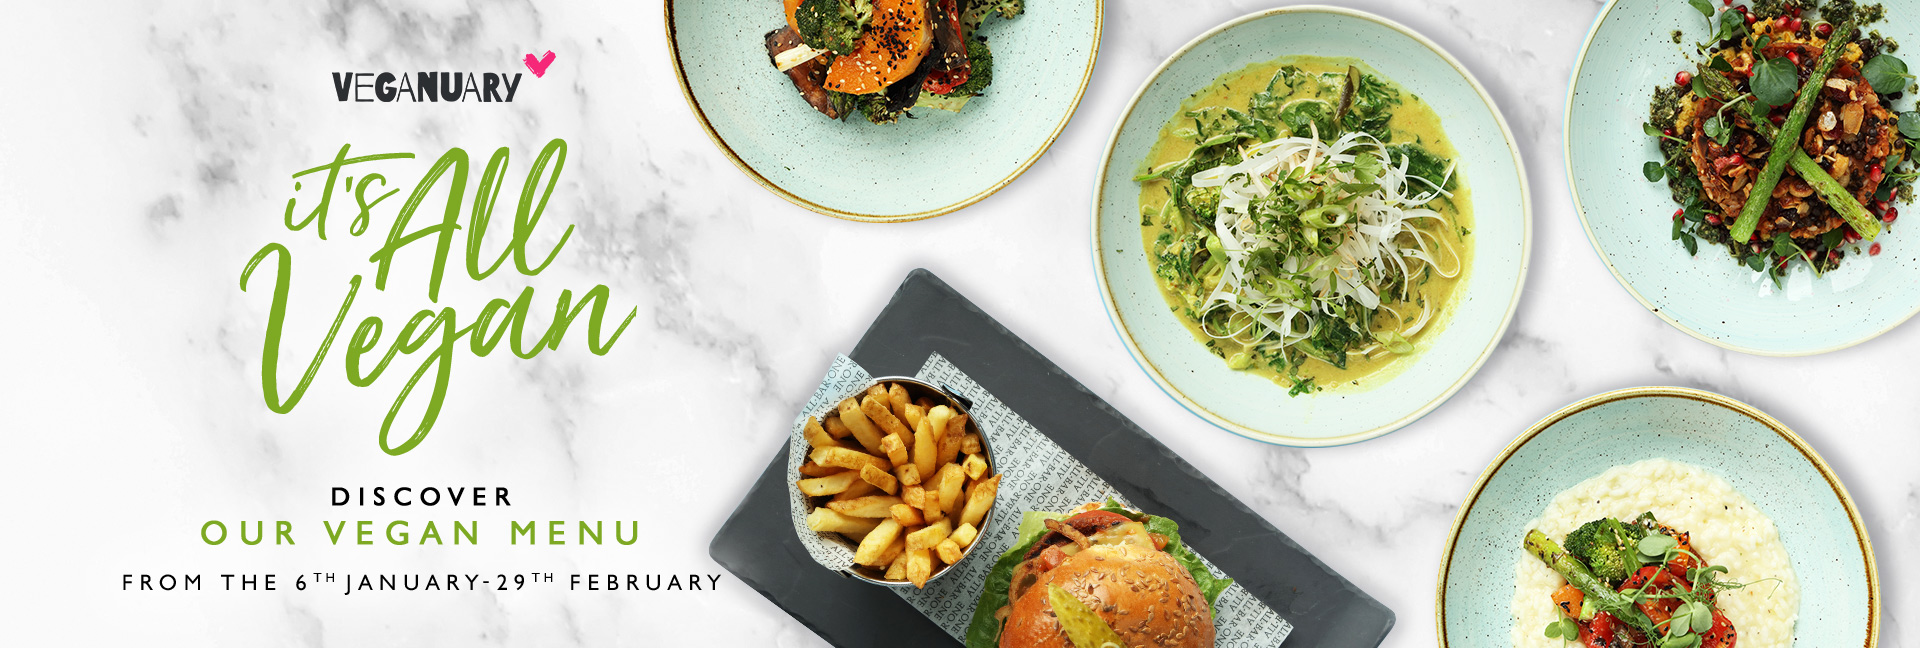 Veganuary Menu at All Bar One Regent Street